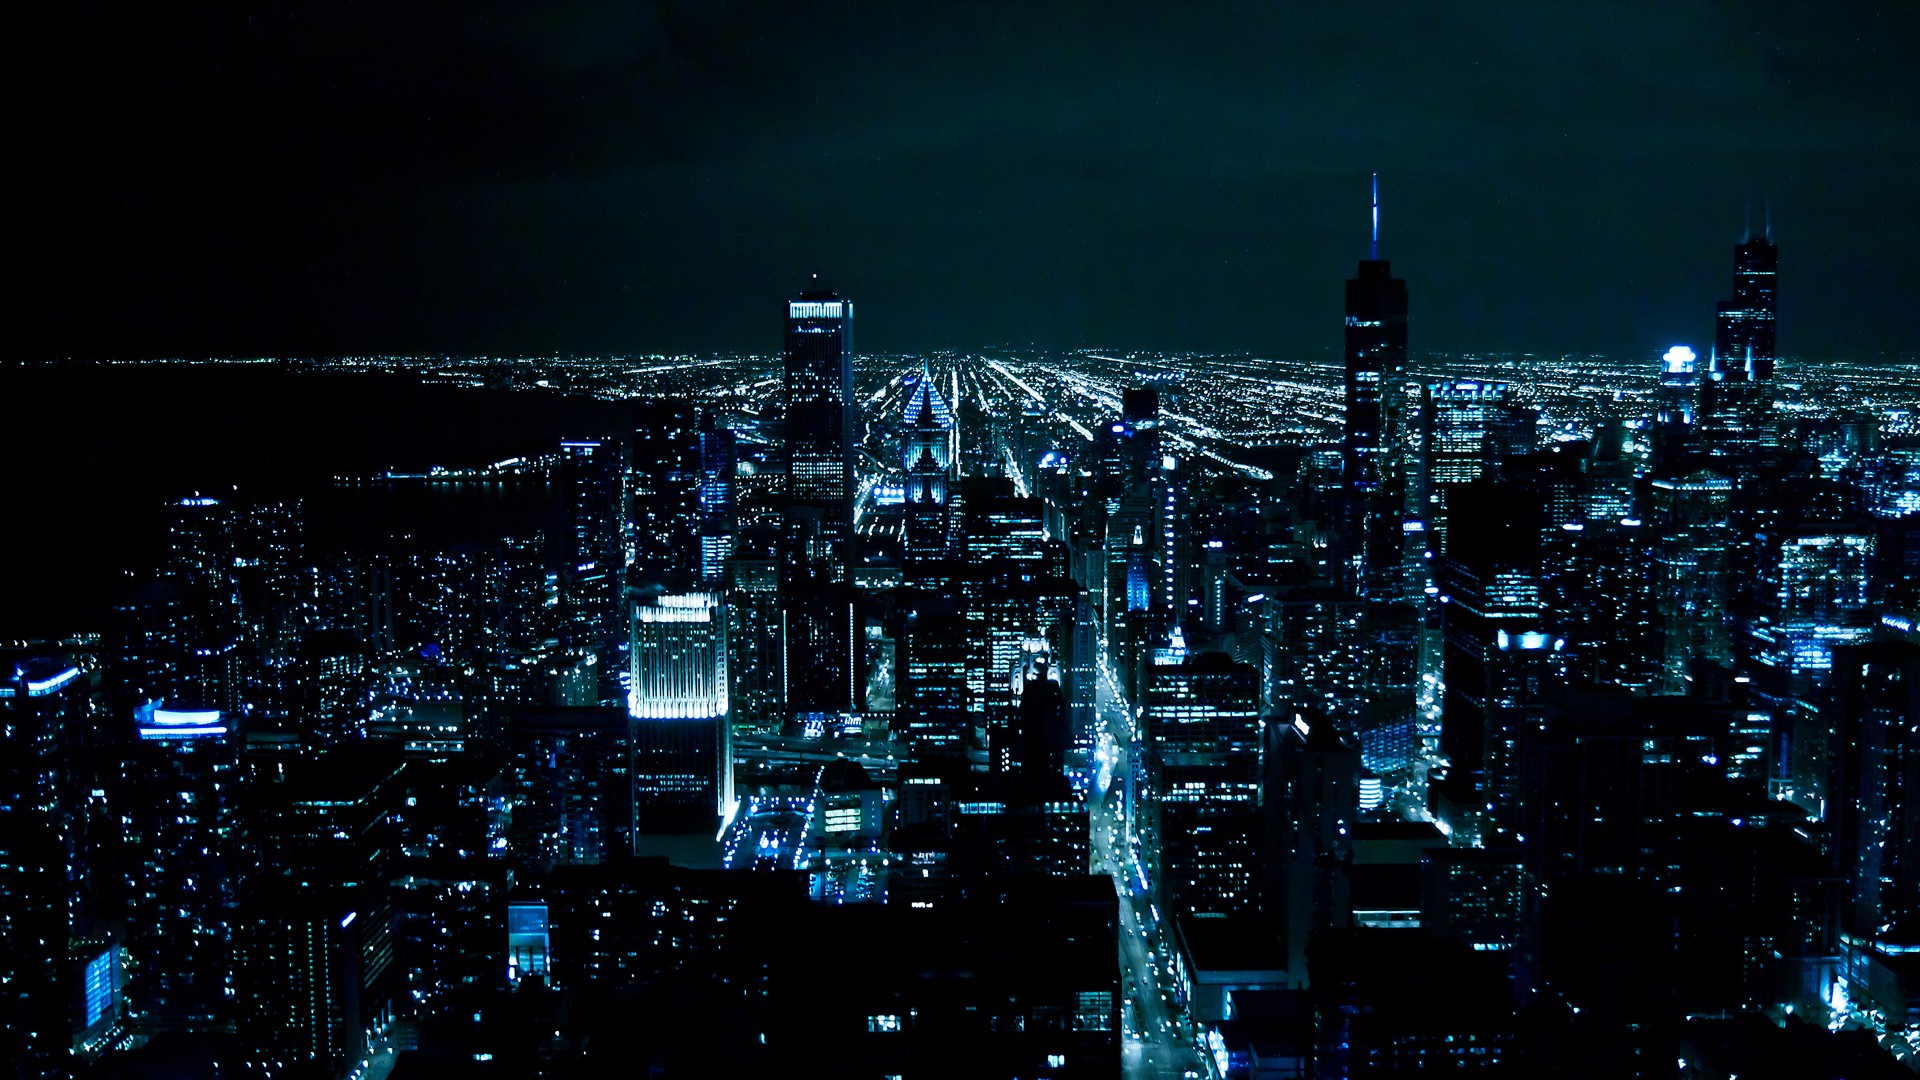 Download The Dark Night Chicago as Gotham Wallpaper Wallpapers 1920x1080